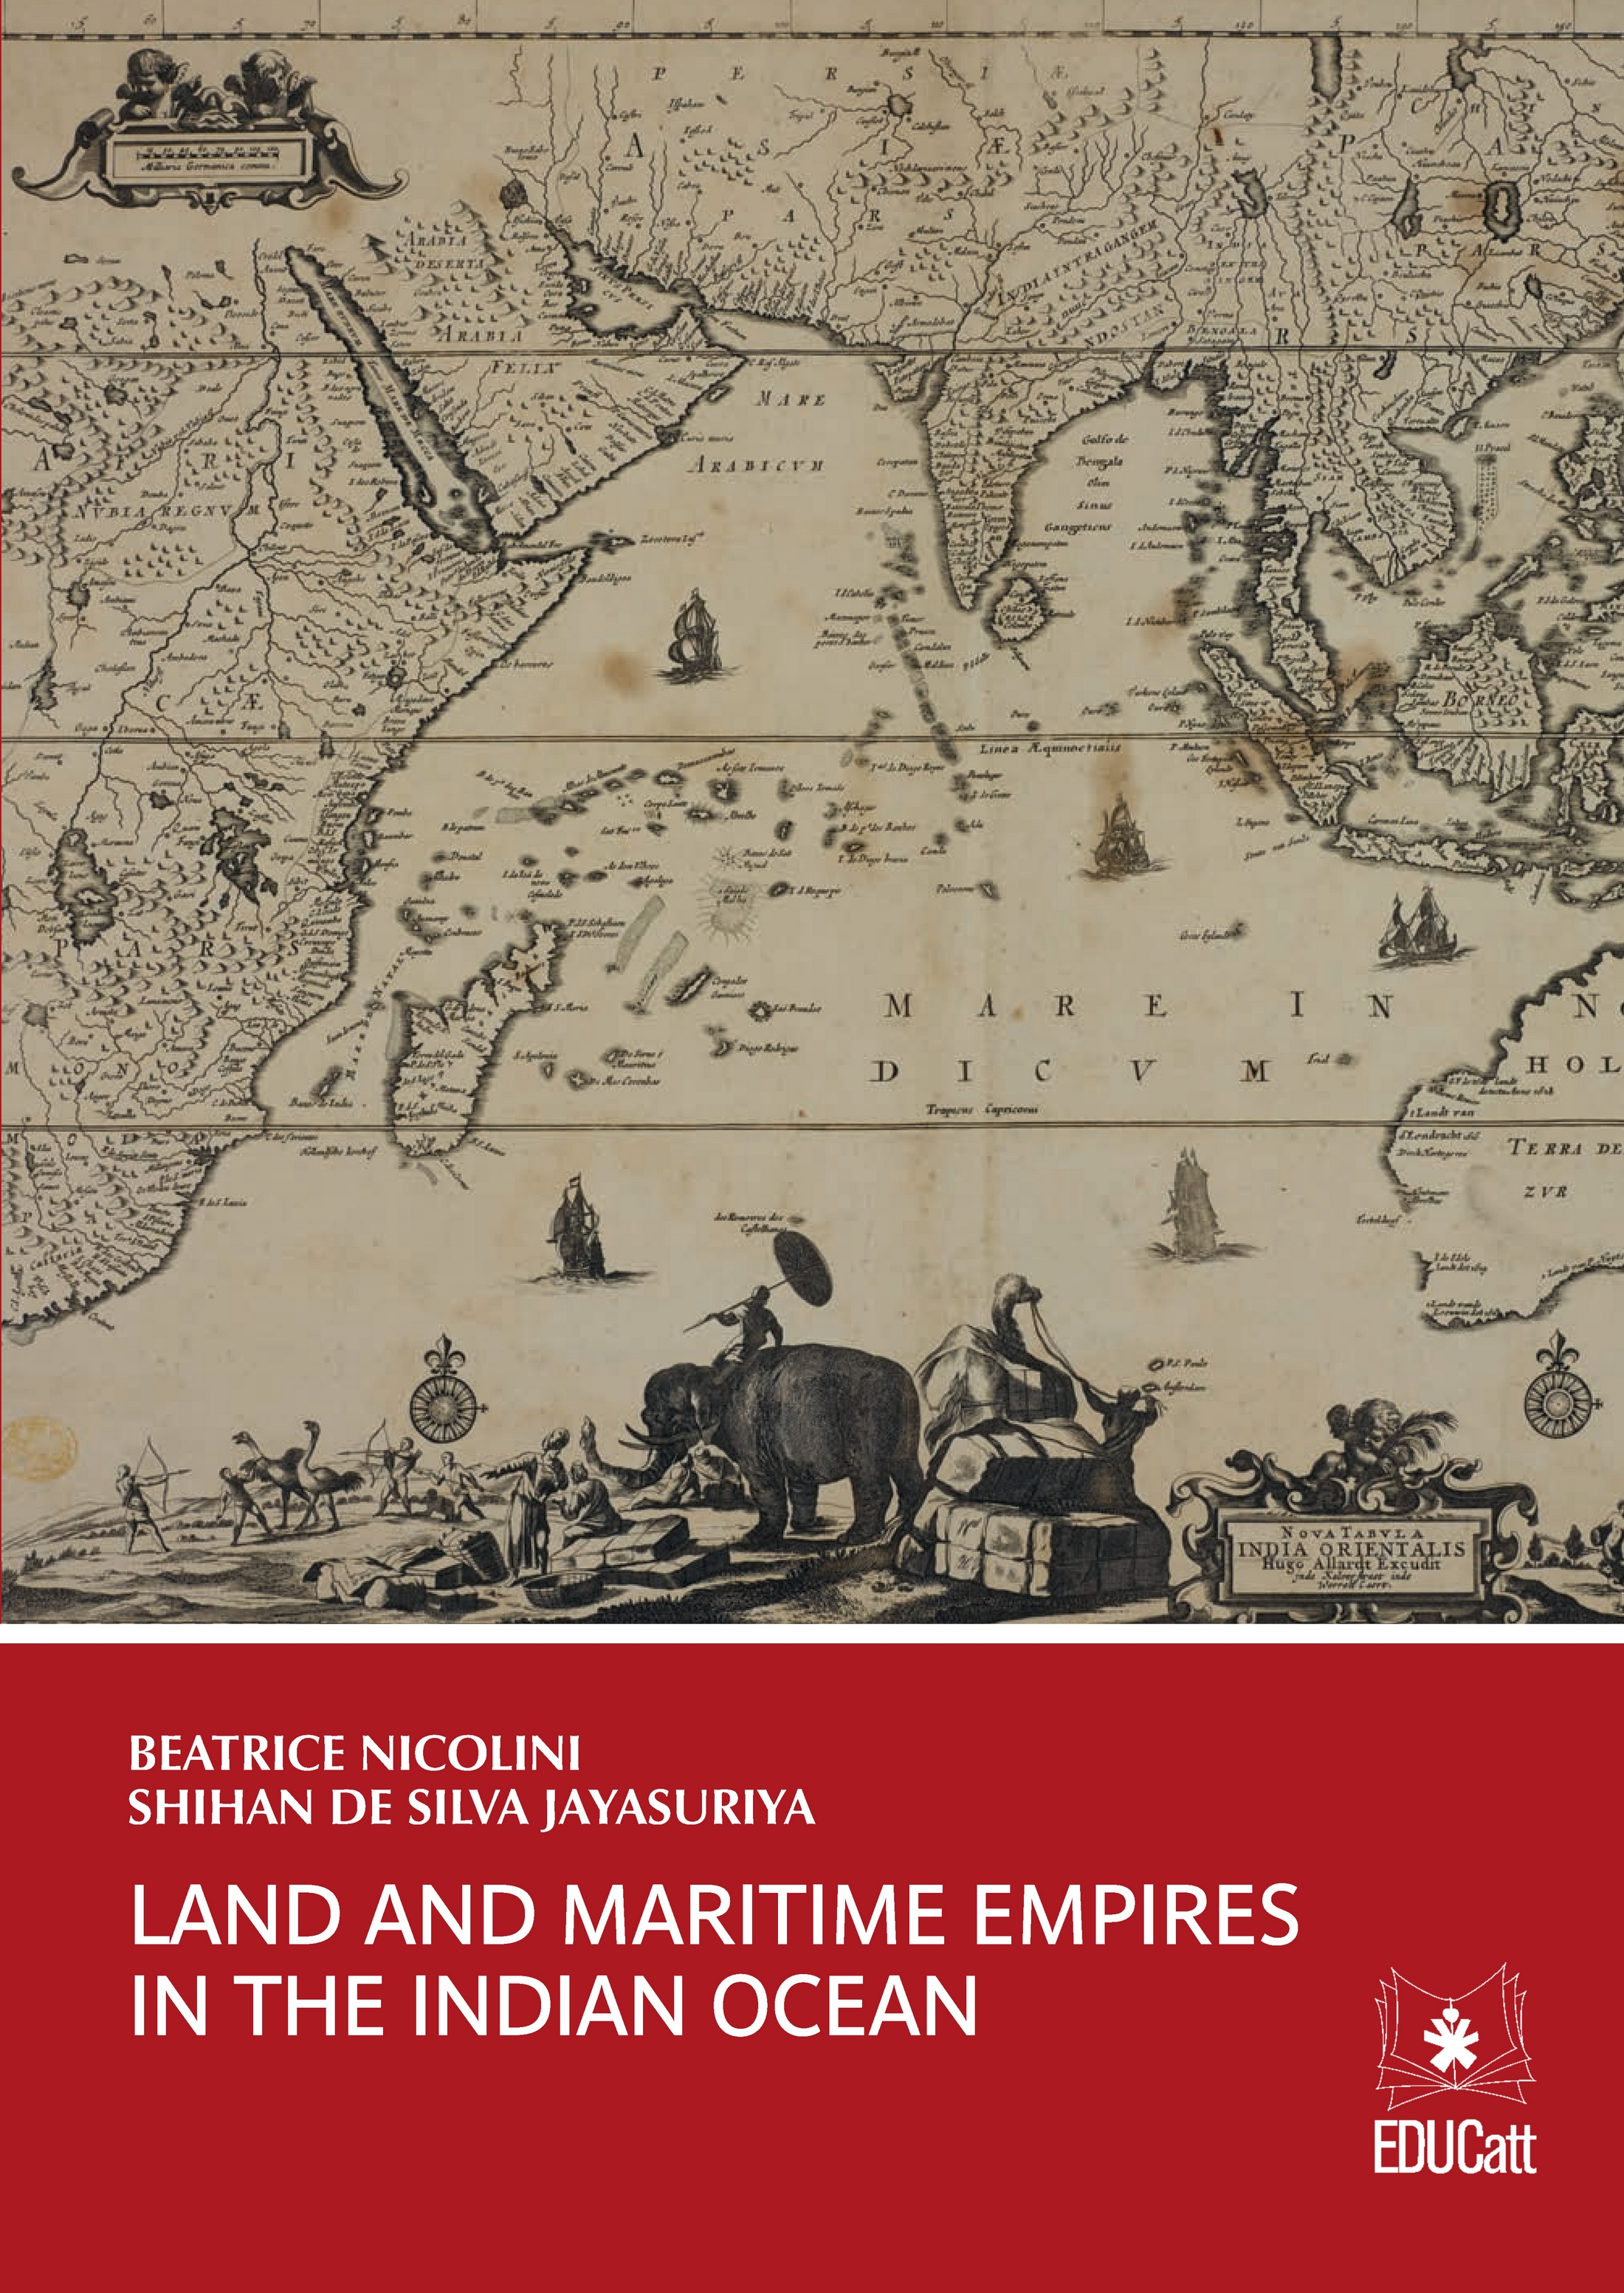 LAND AND MARITIME EMPIRES IN THE INDIAN OCEAN